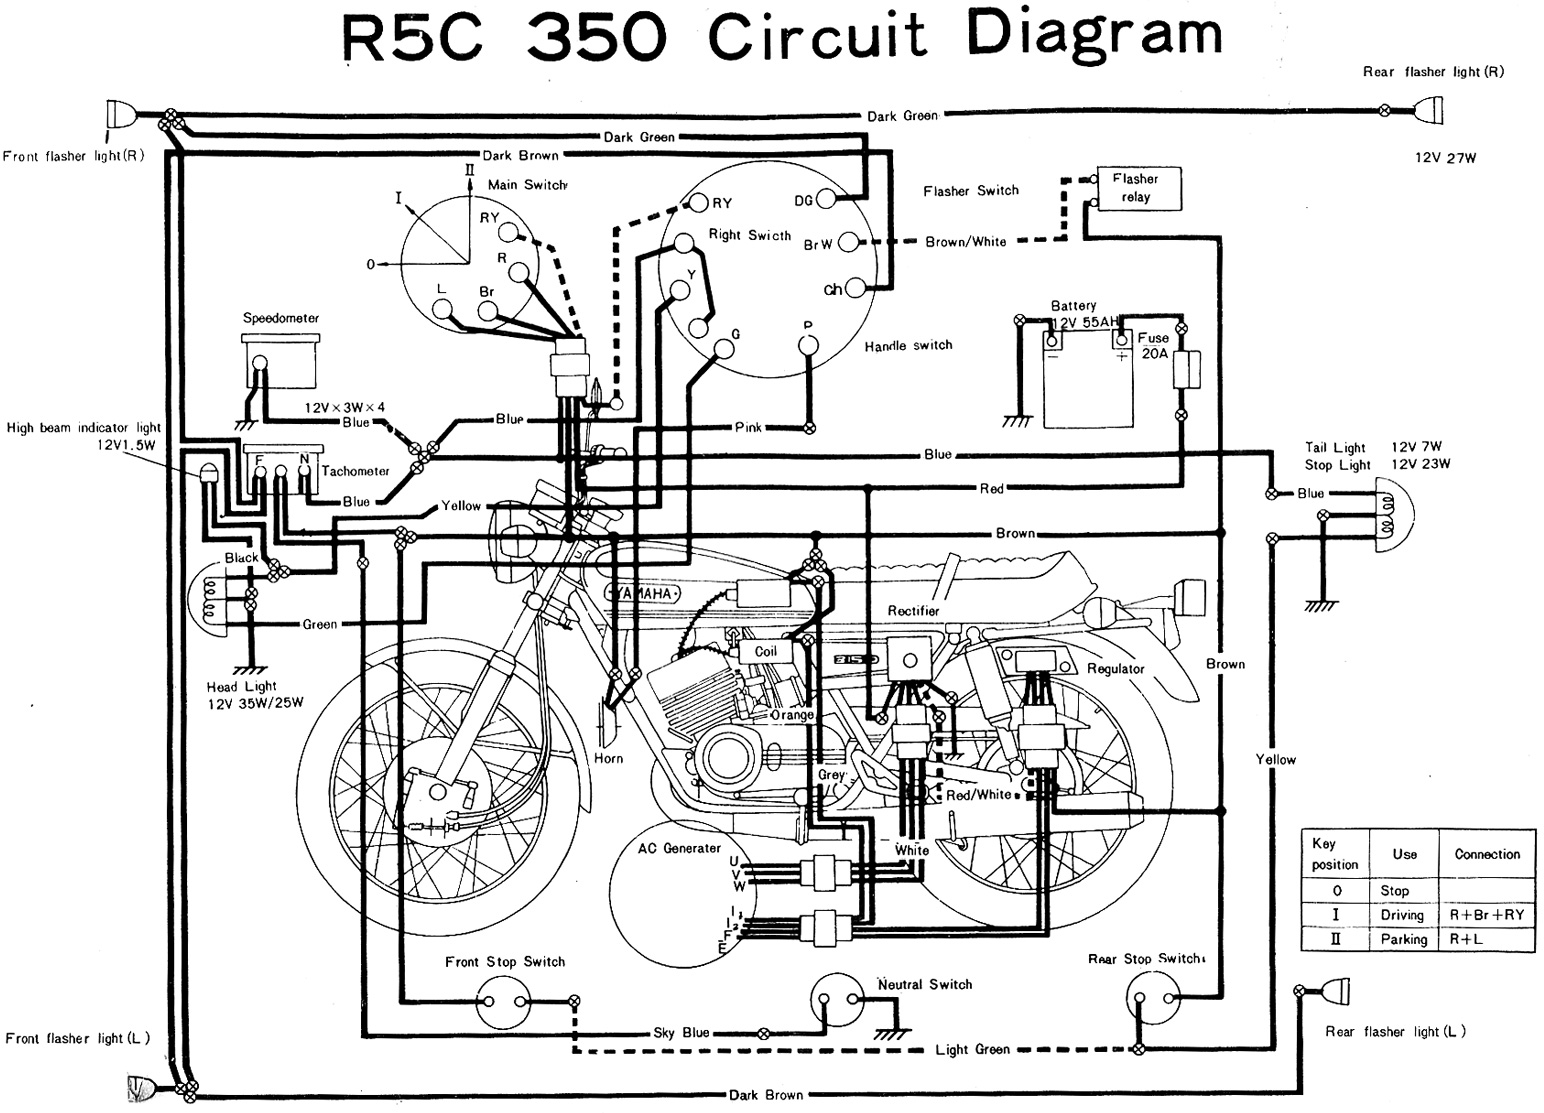 Yamaha RD350 R5C Wiring Diagram motorcycle wiring diagrams evan fell motorcycle worksevan fell Basic Motorcycle Diagram at reclaimingppi.co